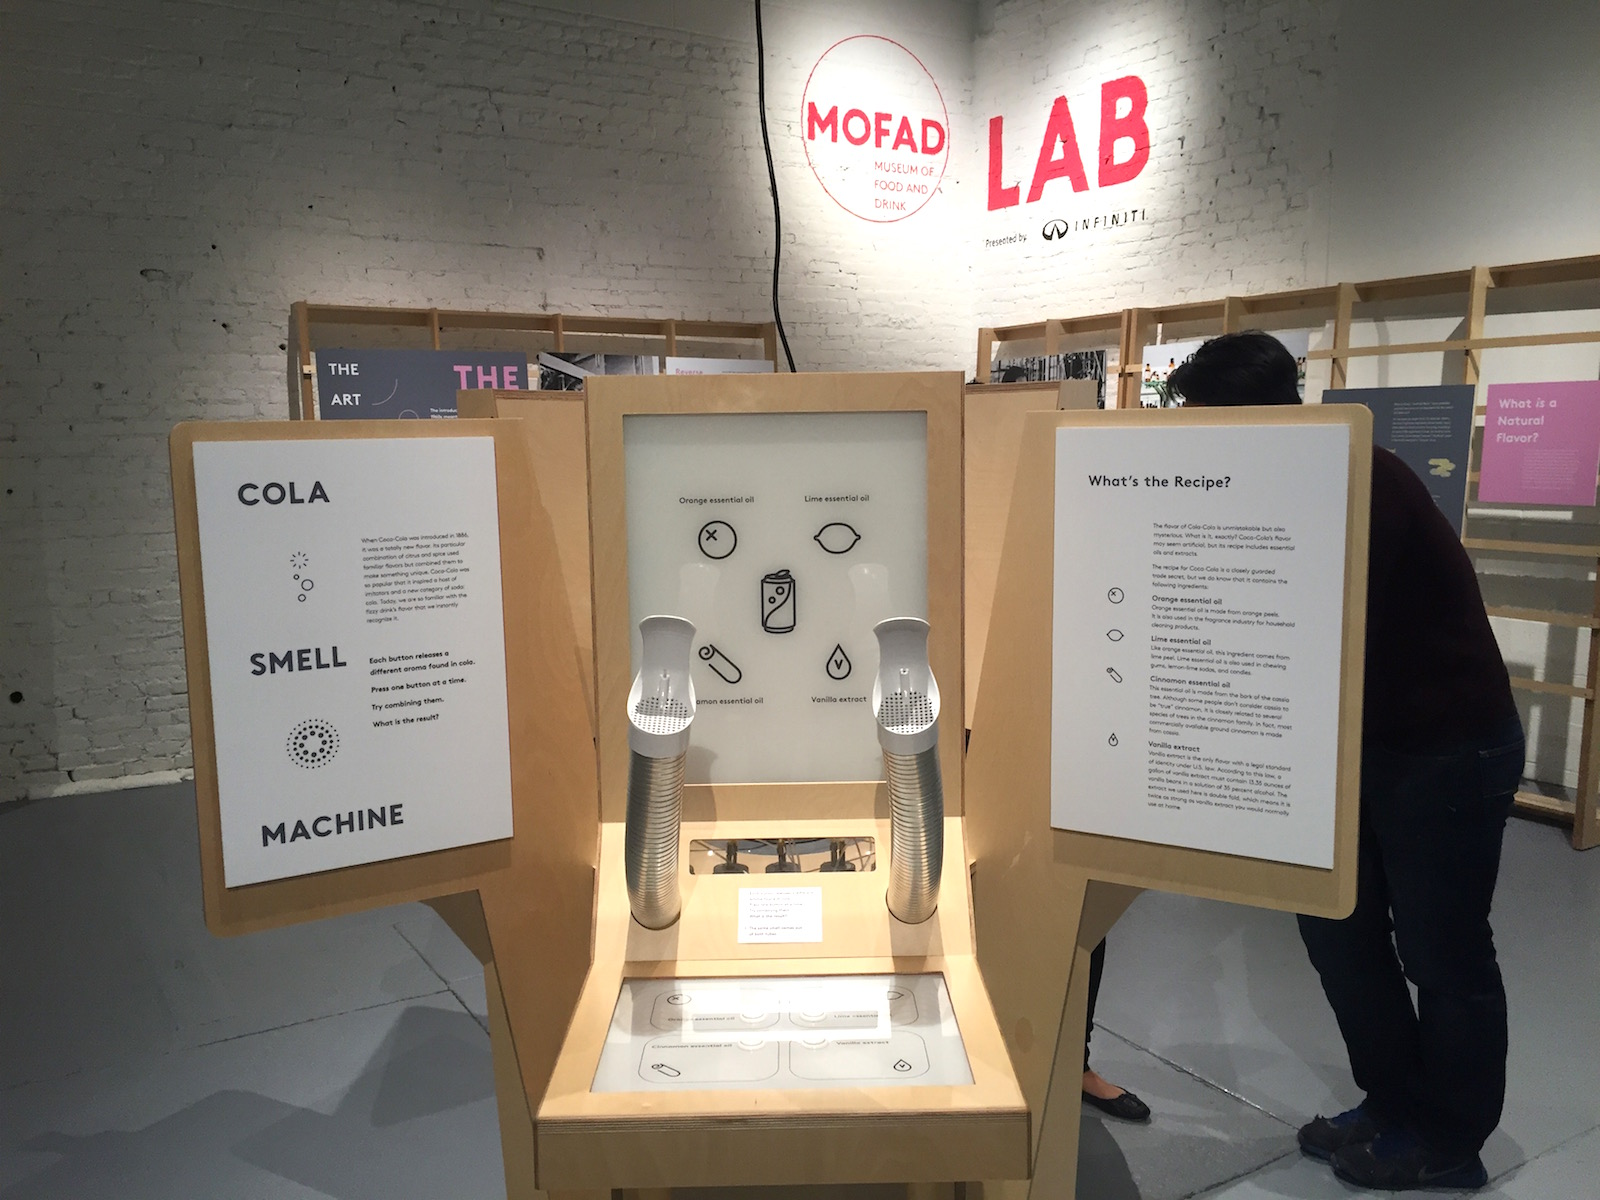 This Museum Exhibition is a Lab for Flavor: Making It and Faking It